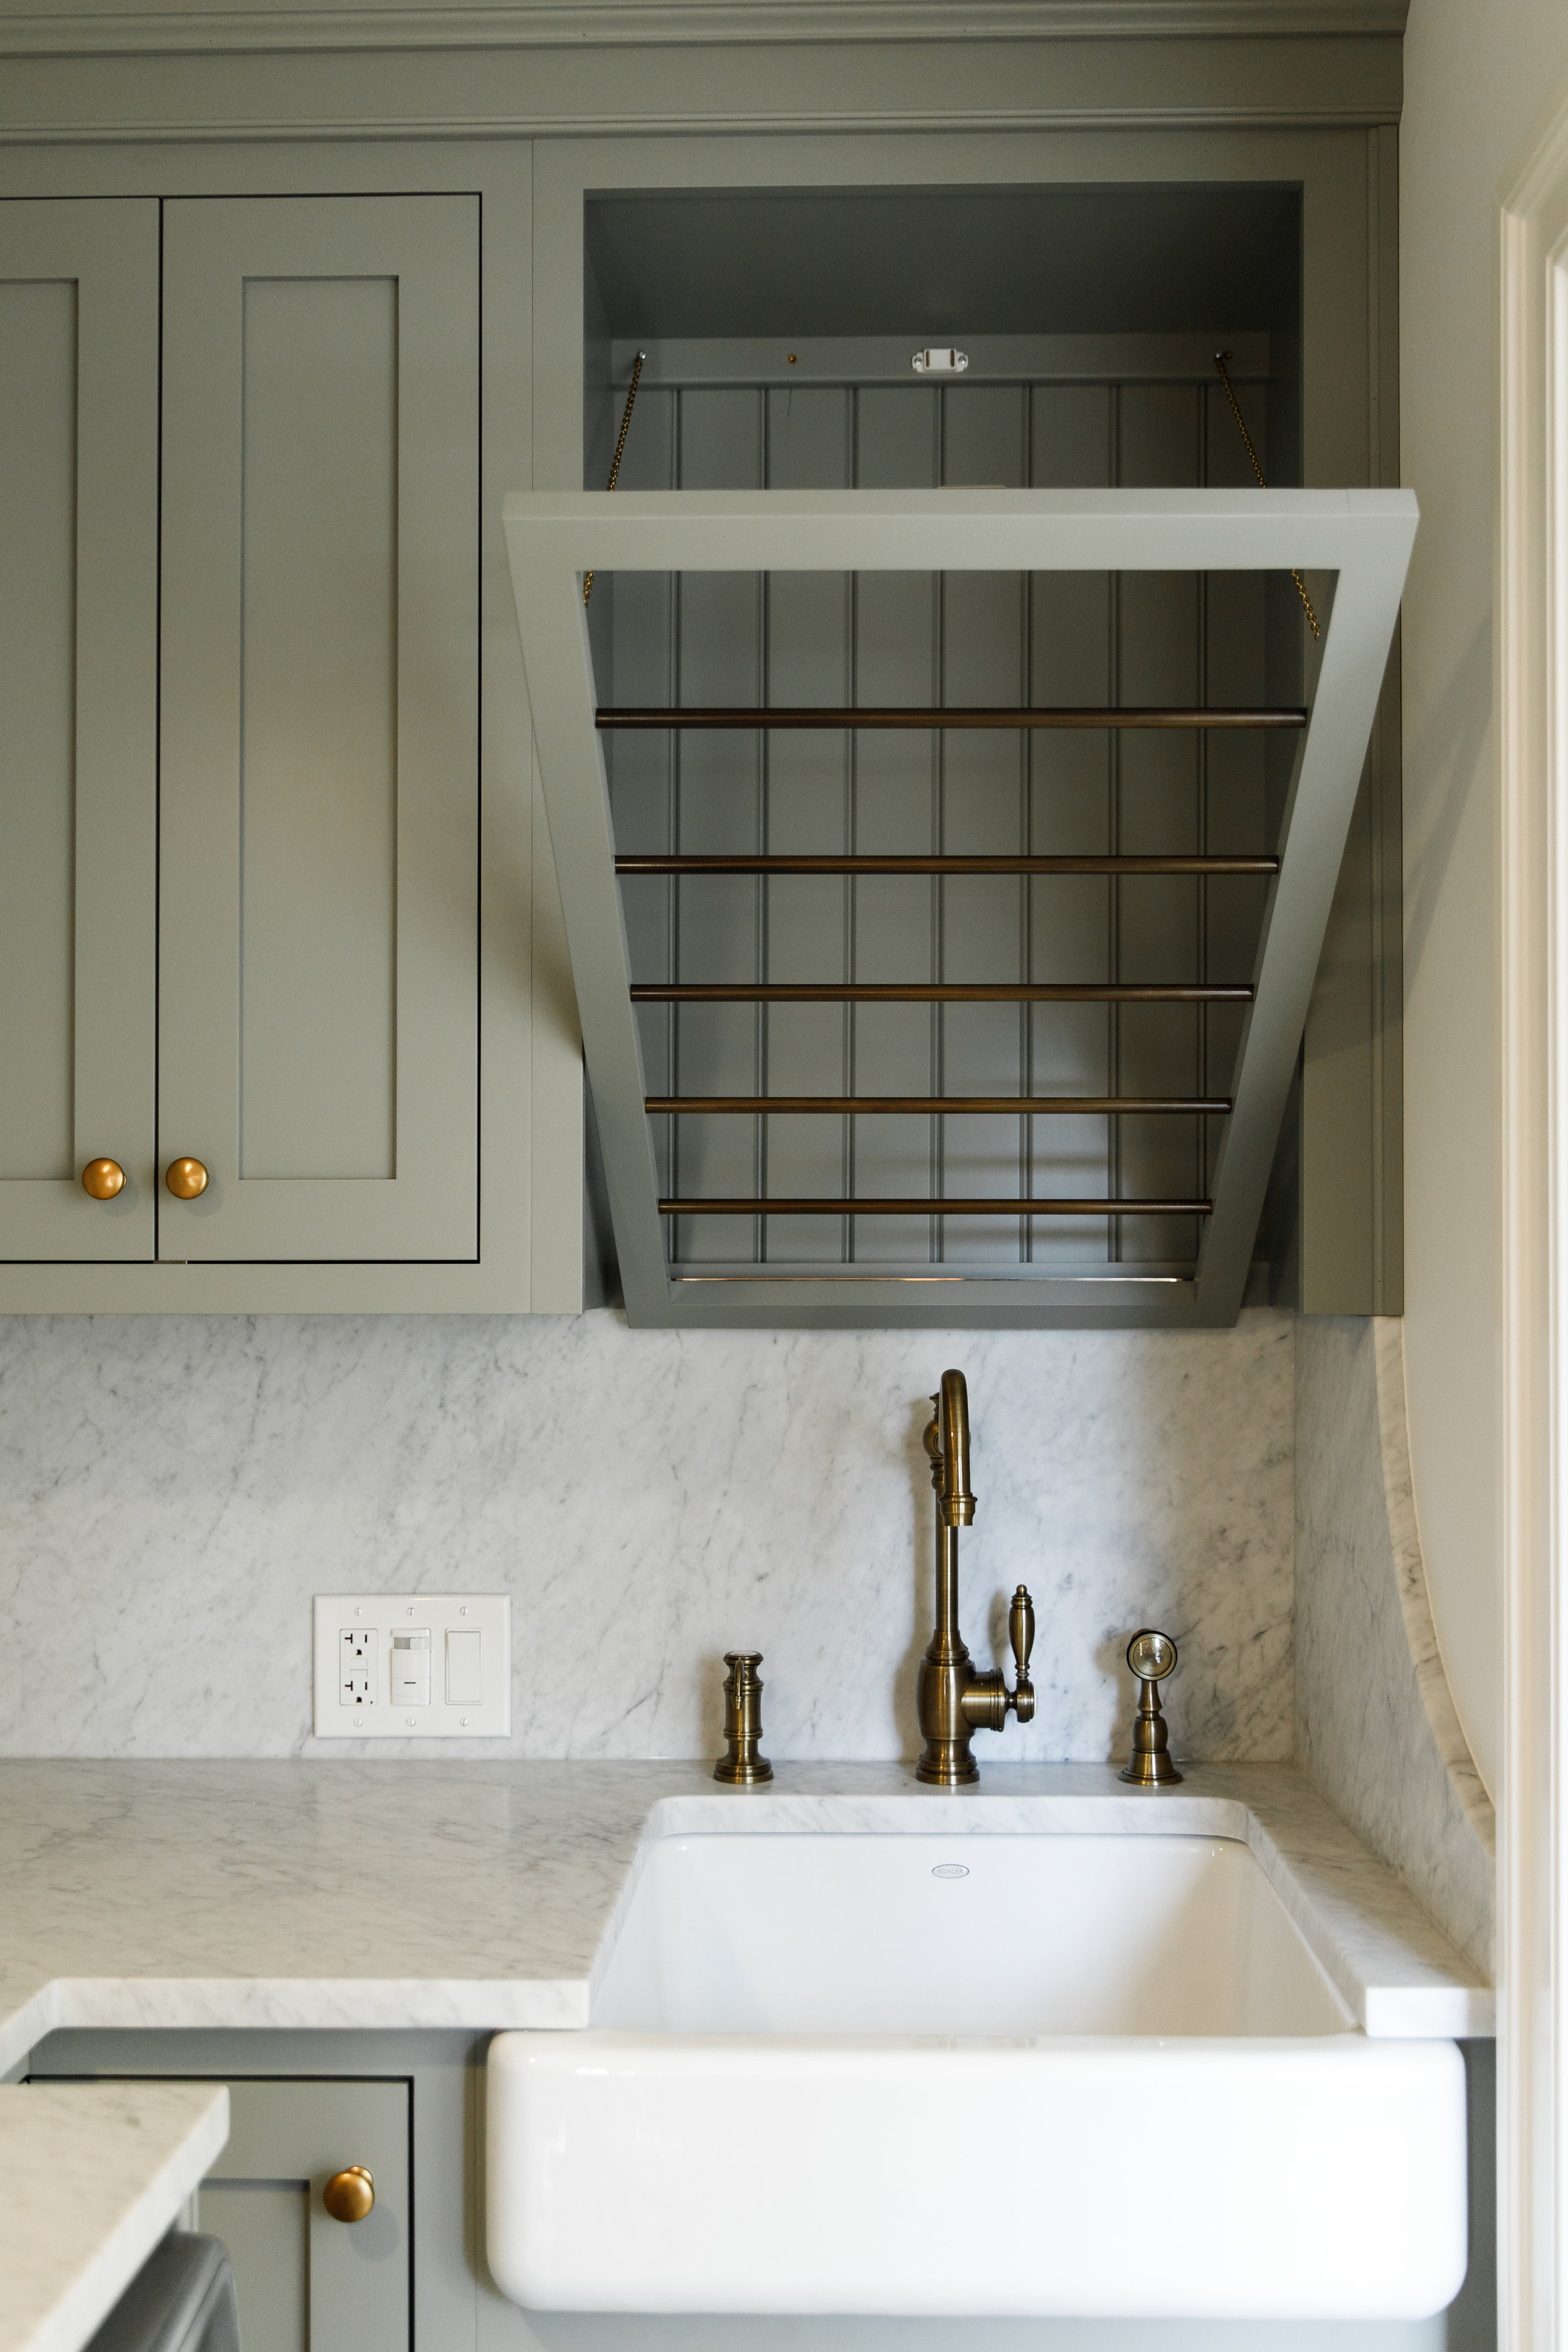 Brass hardware and cabinets painted in Pigeon by Farrow and Ball